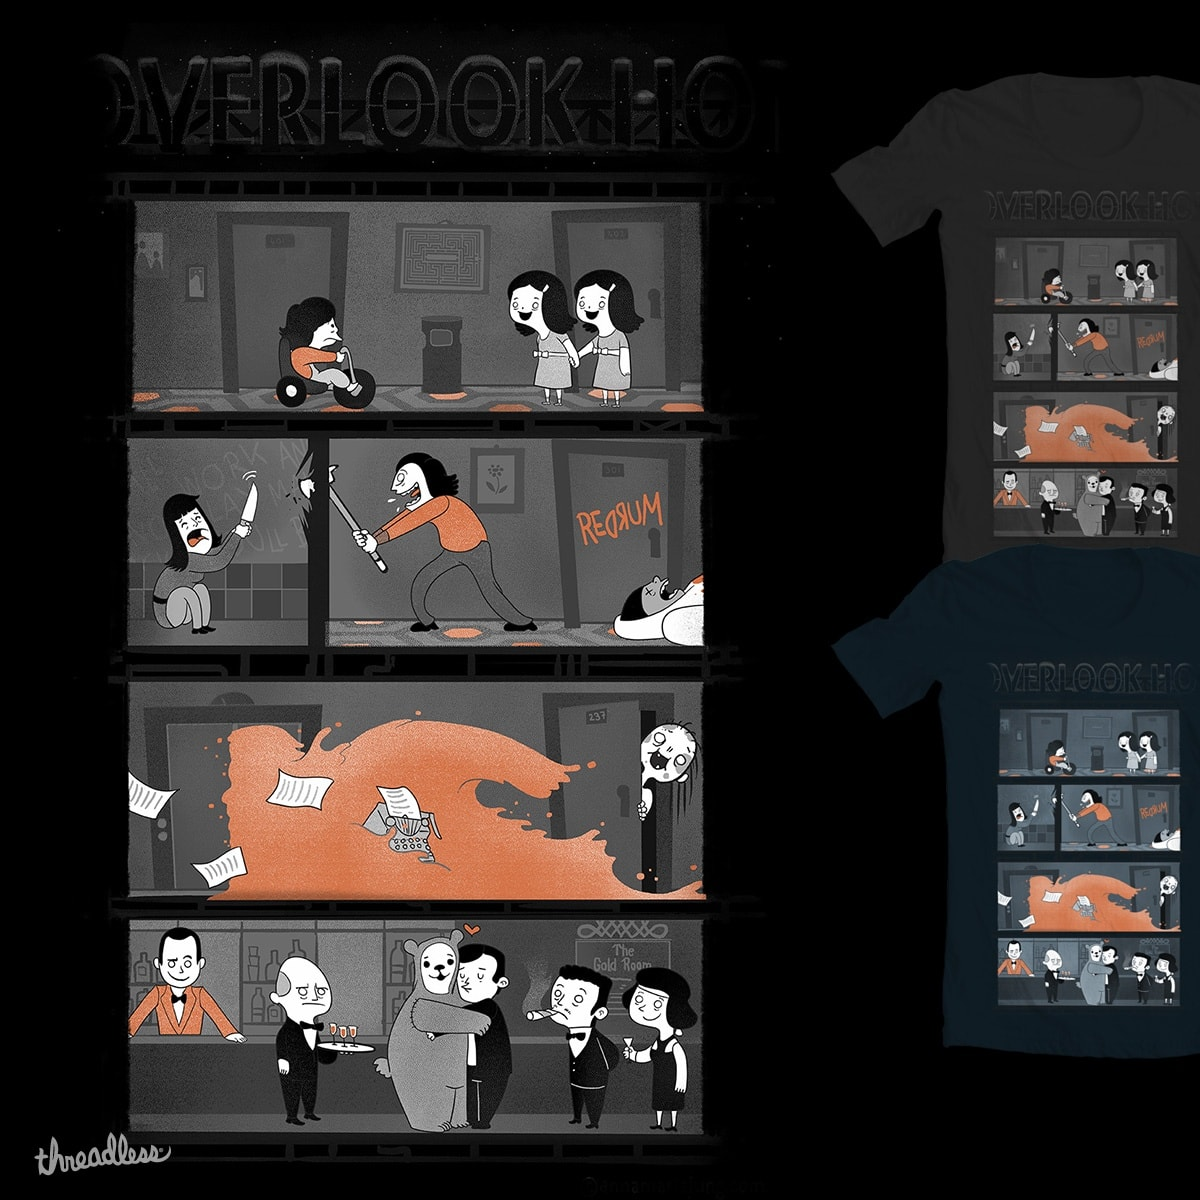 Welcome to the Overlook by queenmob on Threadless